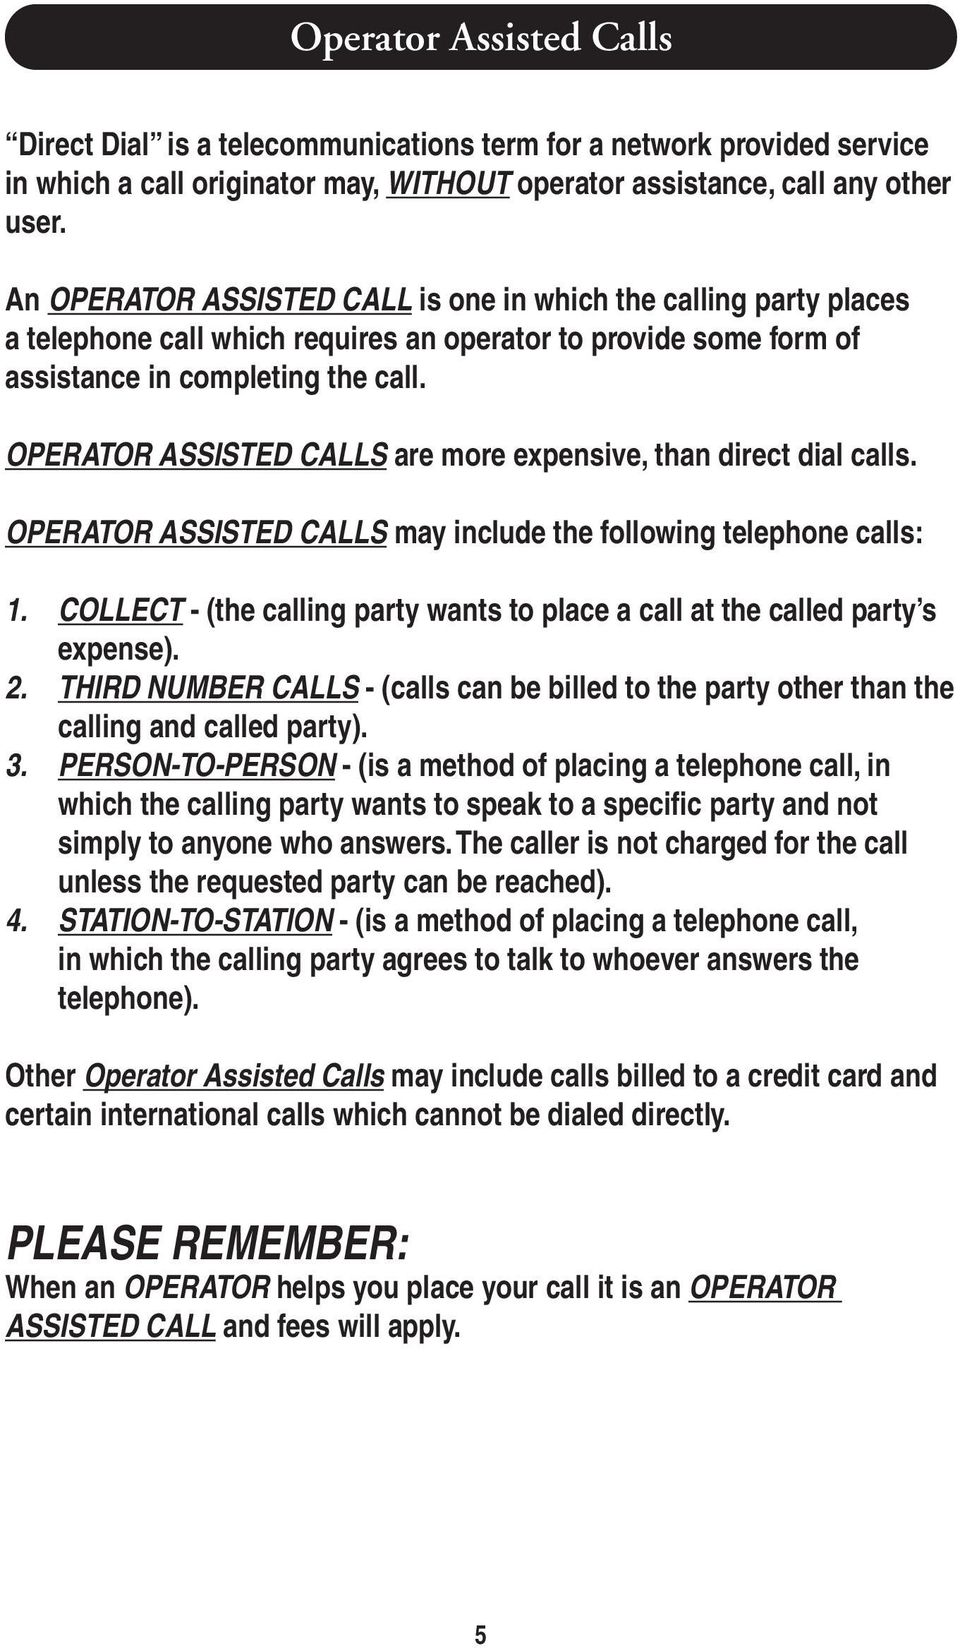 OPERATOR ASSISTED CALLS are more expensive, than direct dial calls.